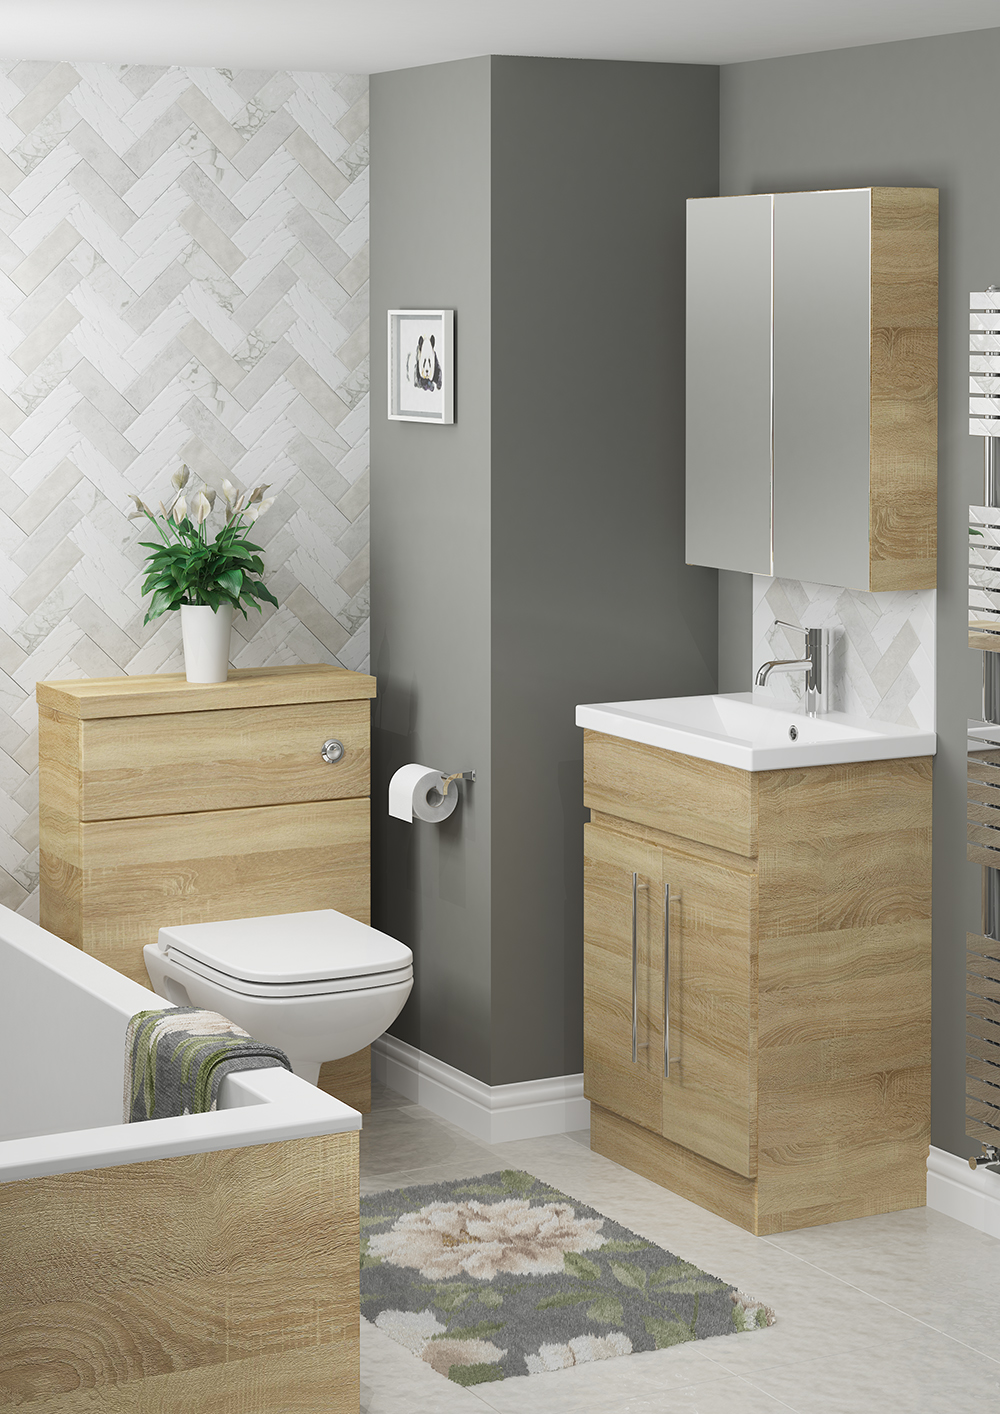 For Pricing And More Bathroom Furniture Have A Look At Our Latest Brochure Here